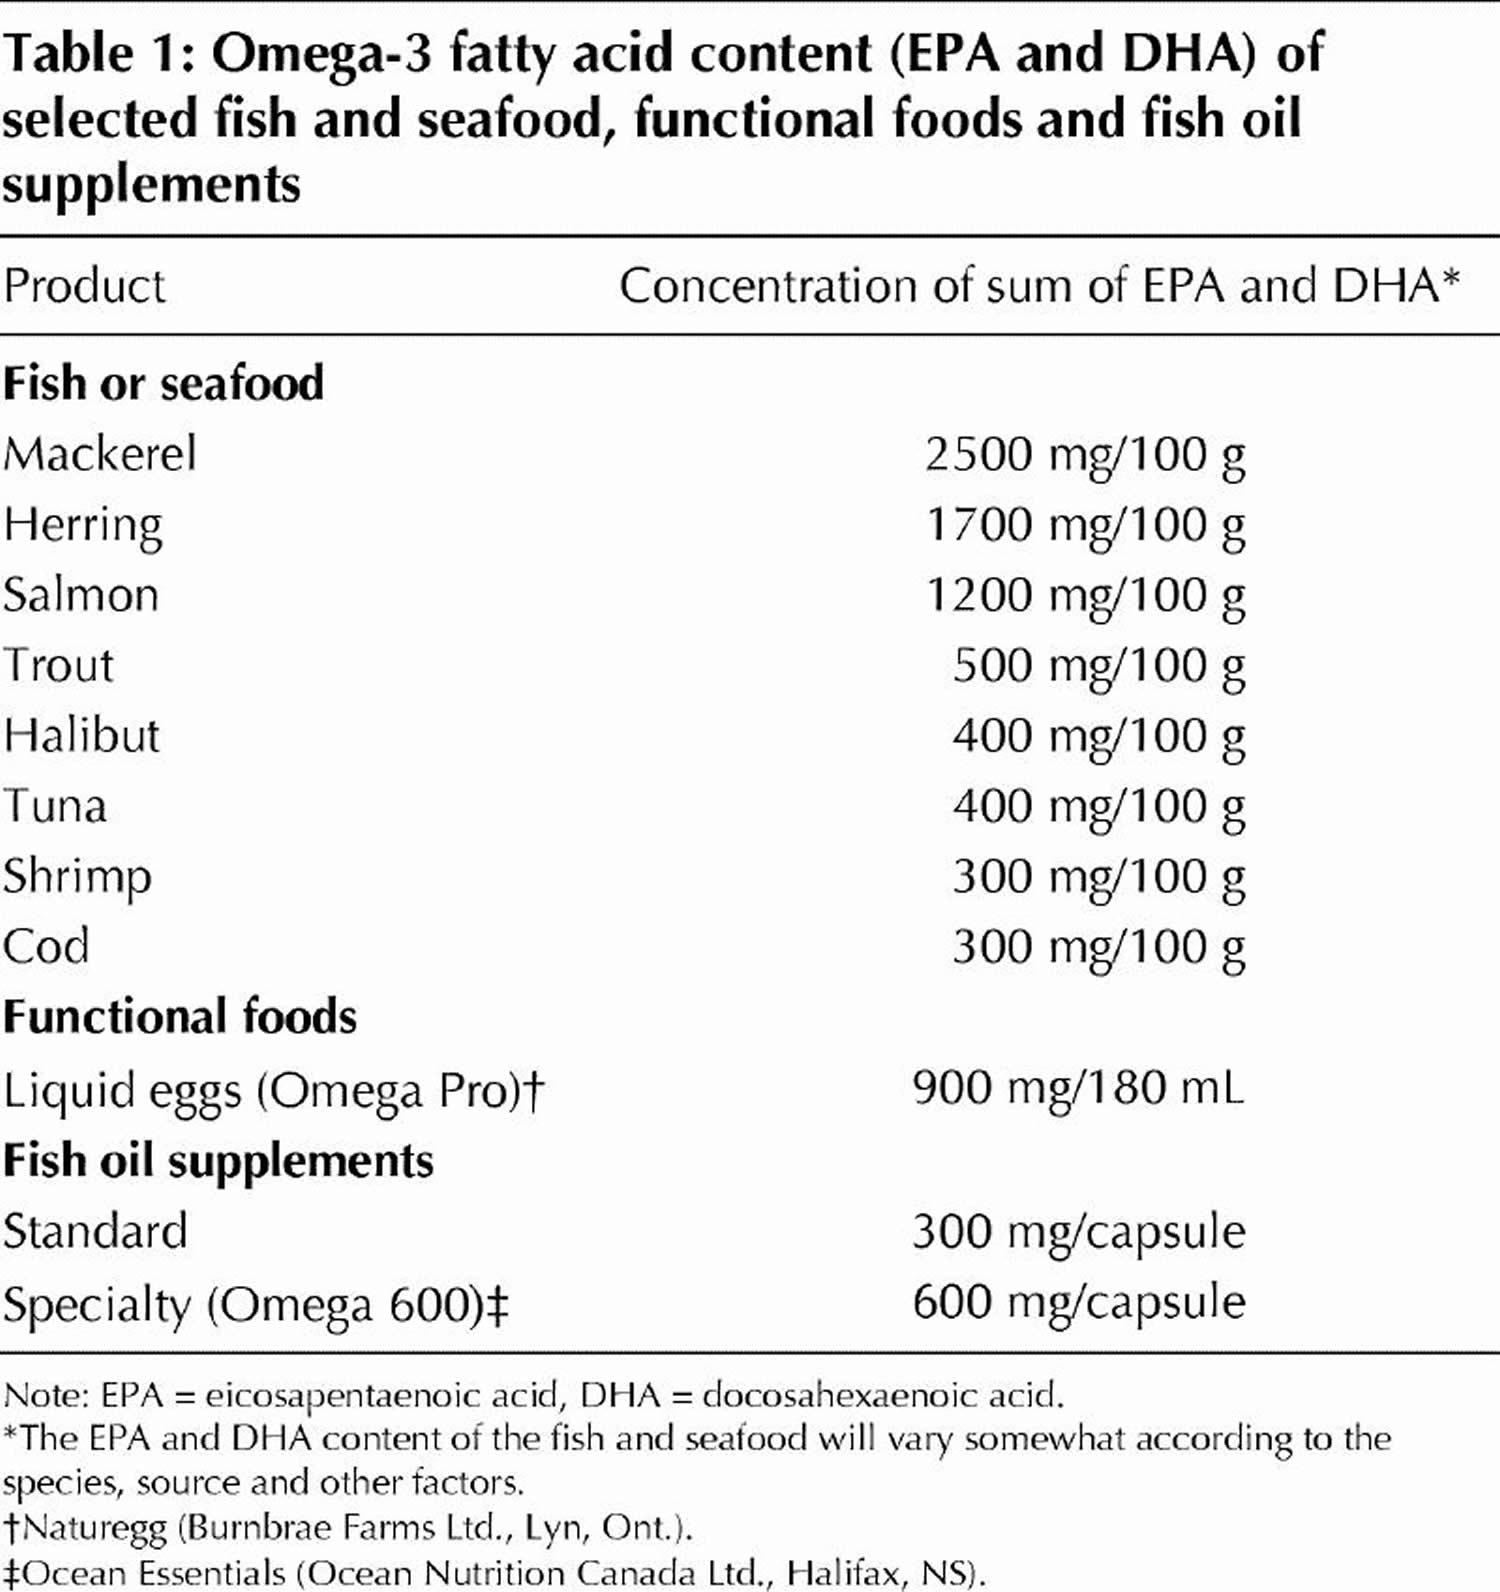 omega-3 fatty acid food sources